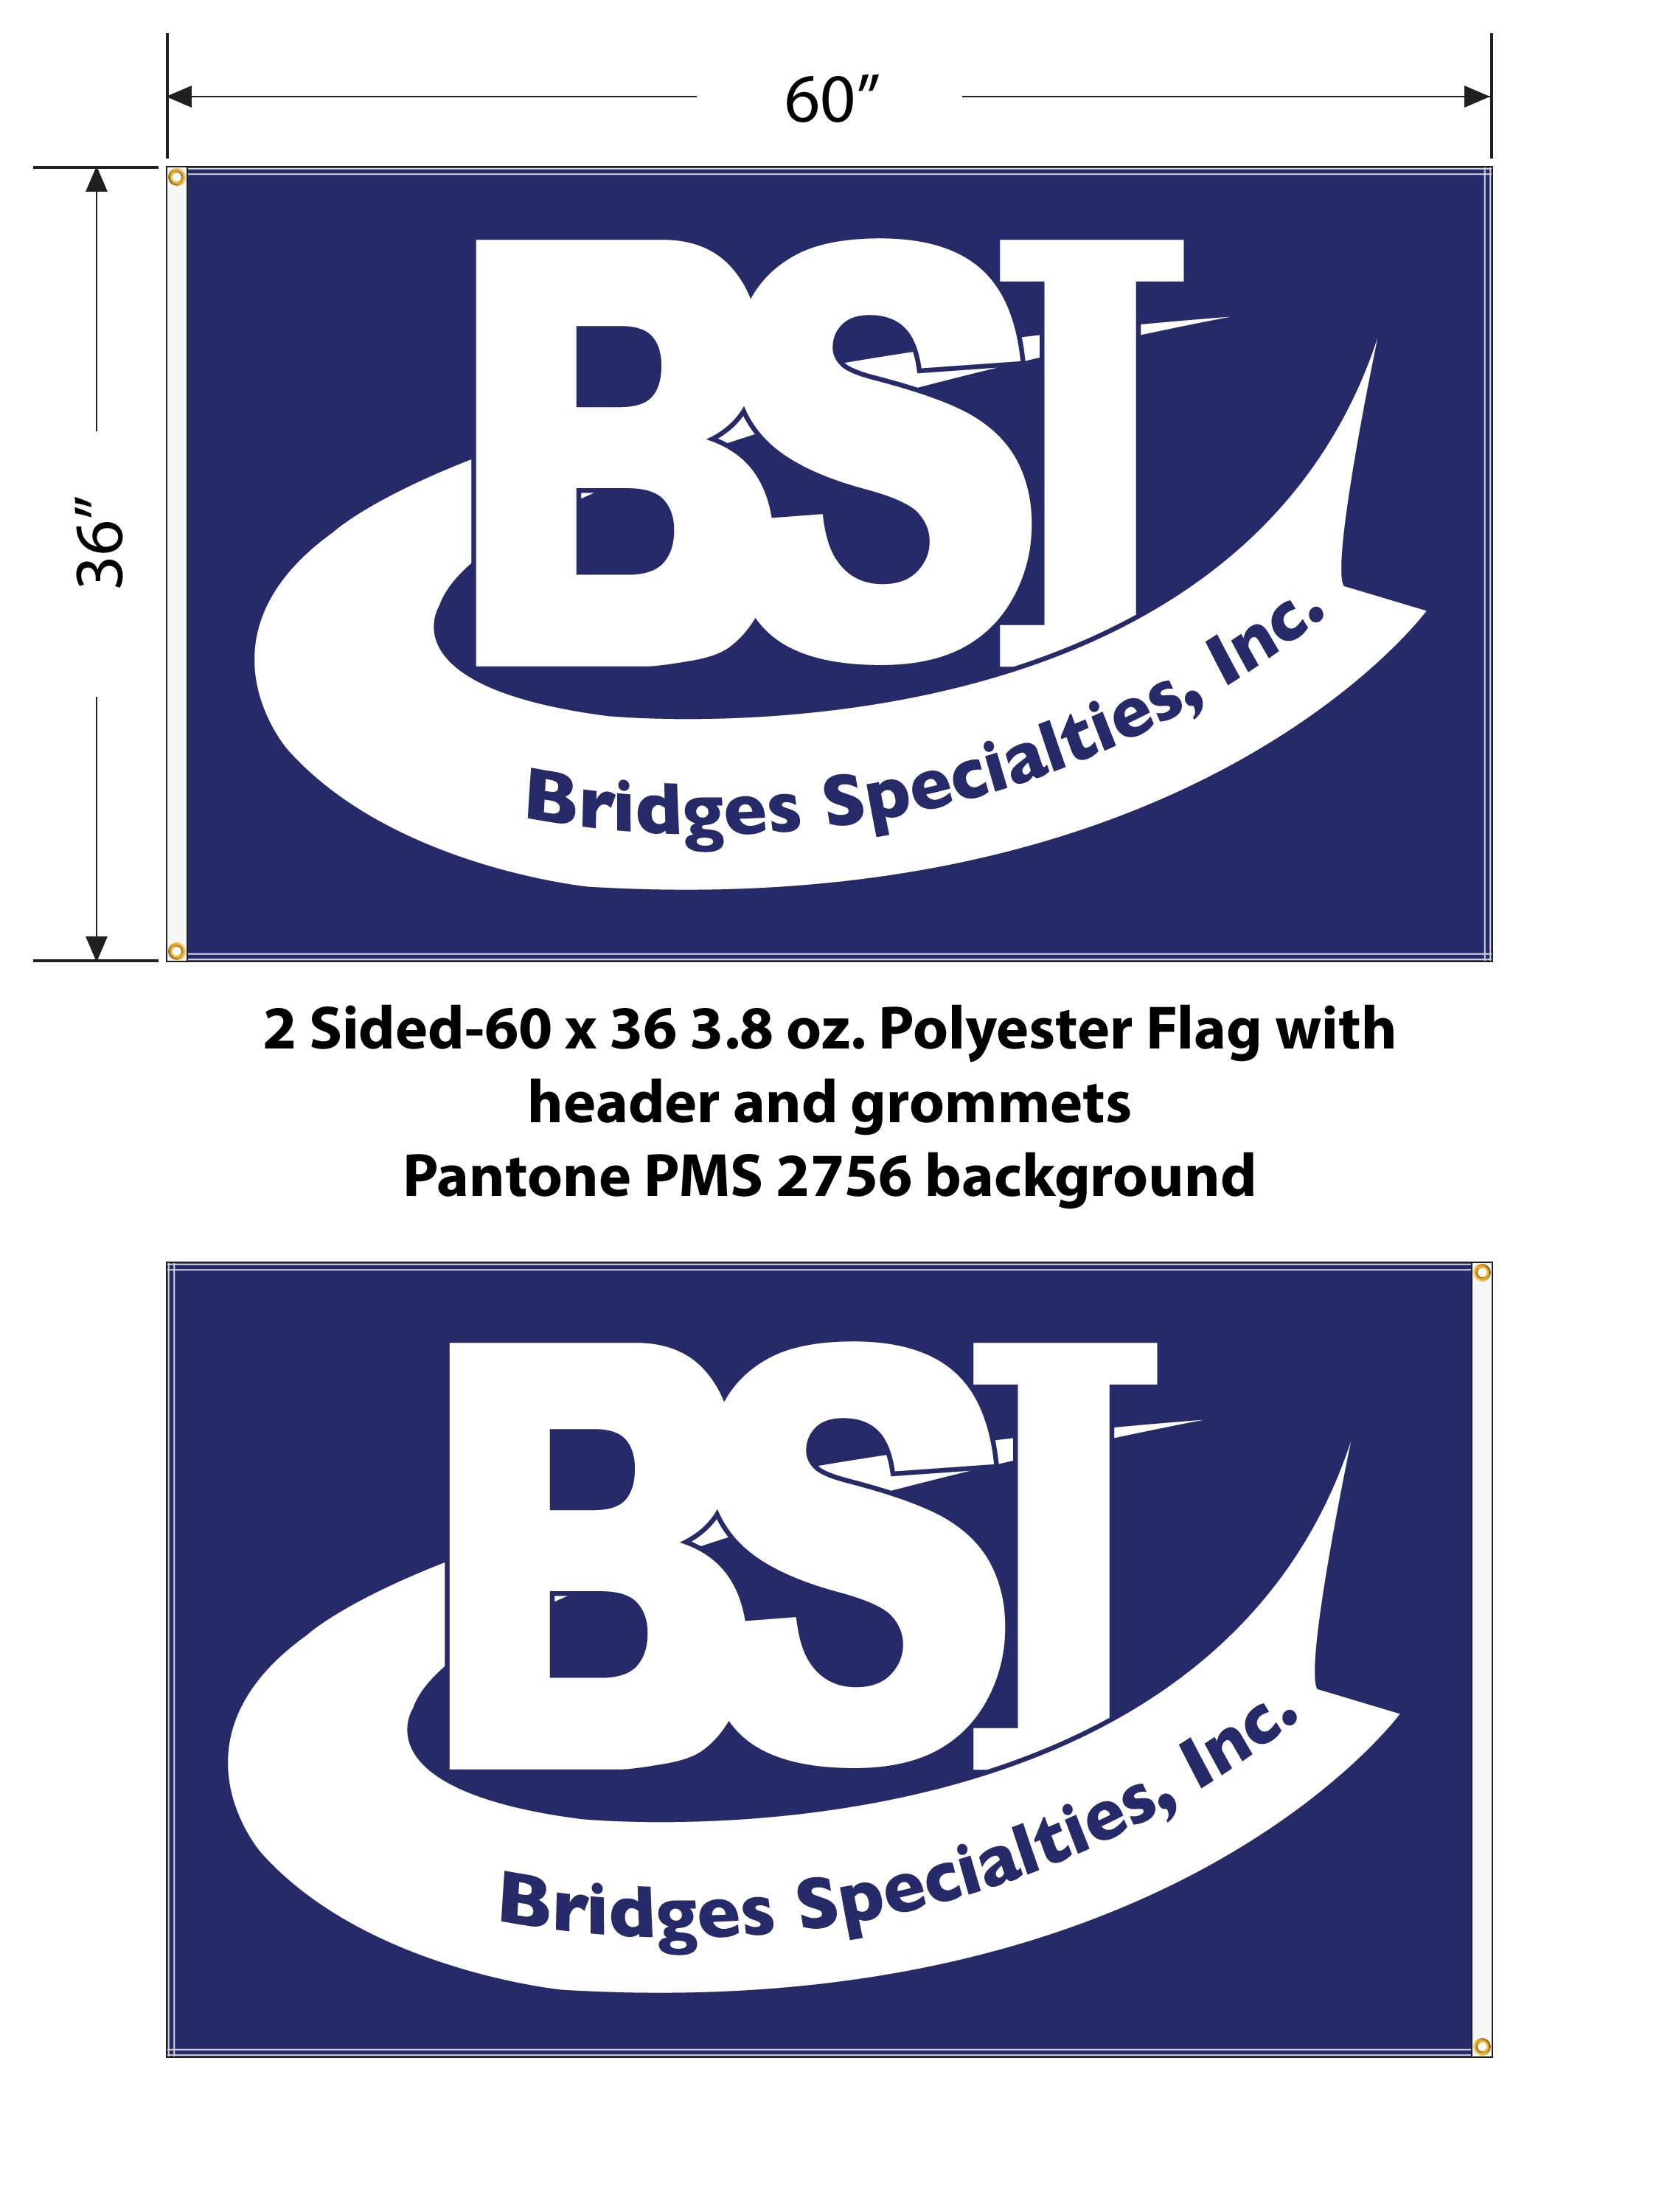 Bridges Specialties Inc.